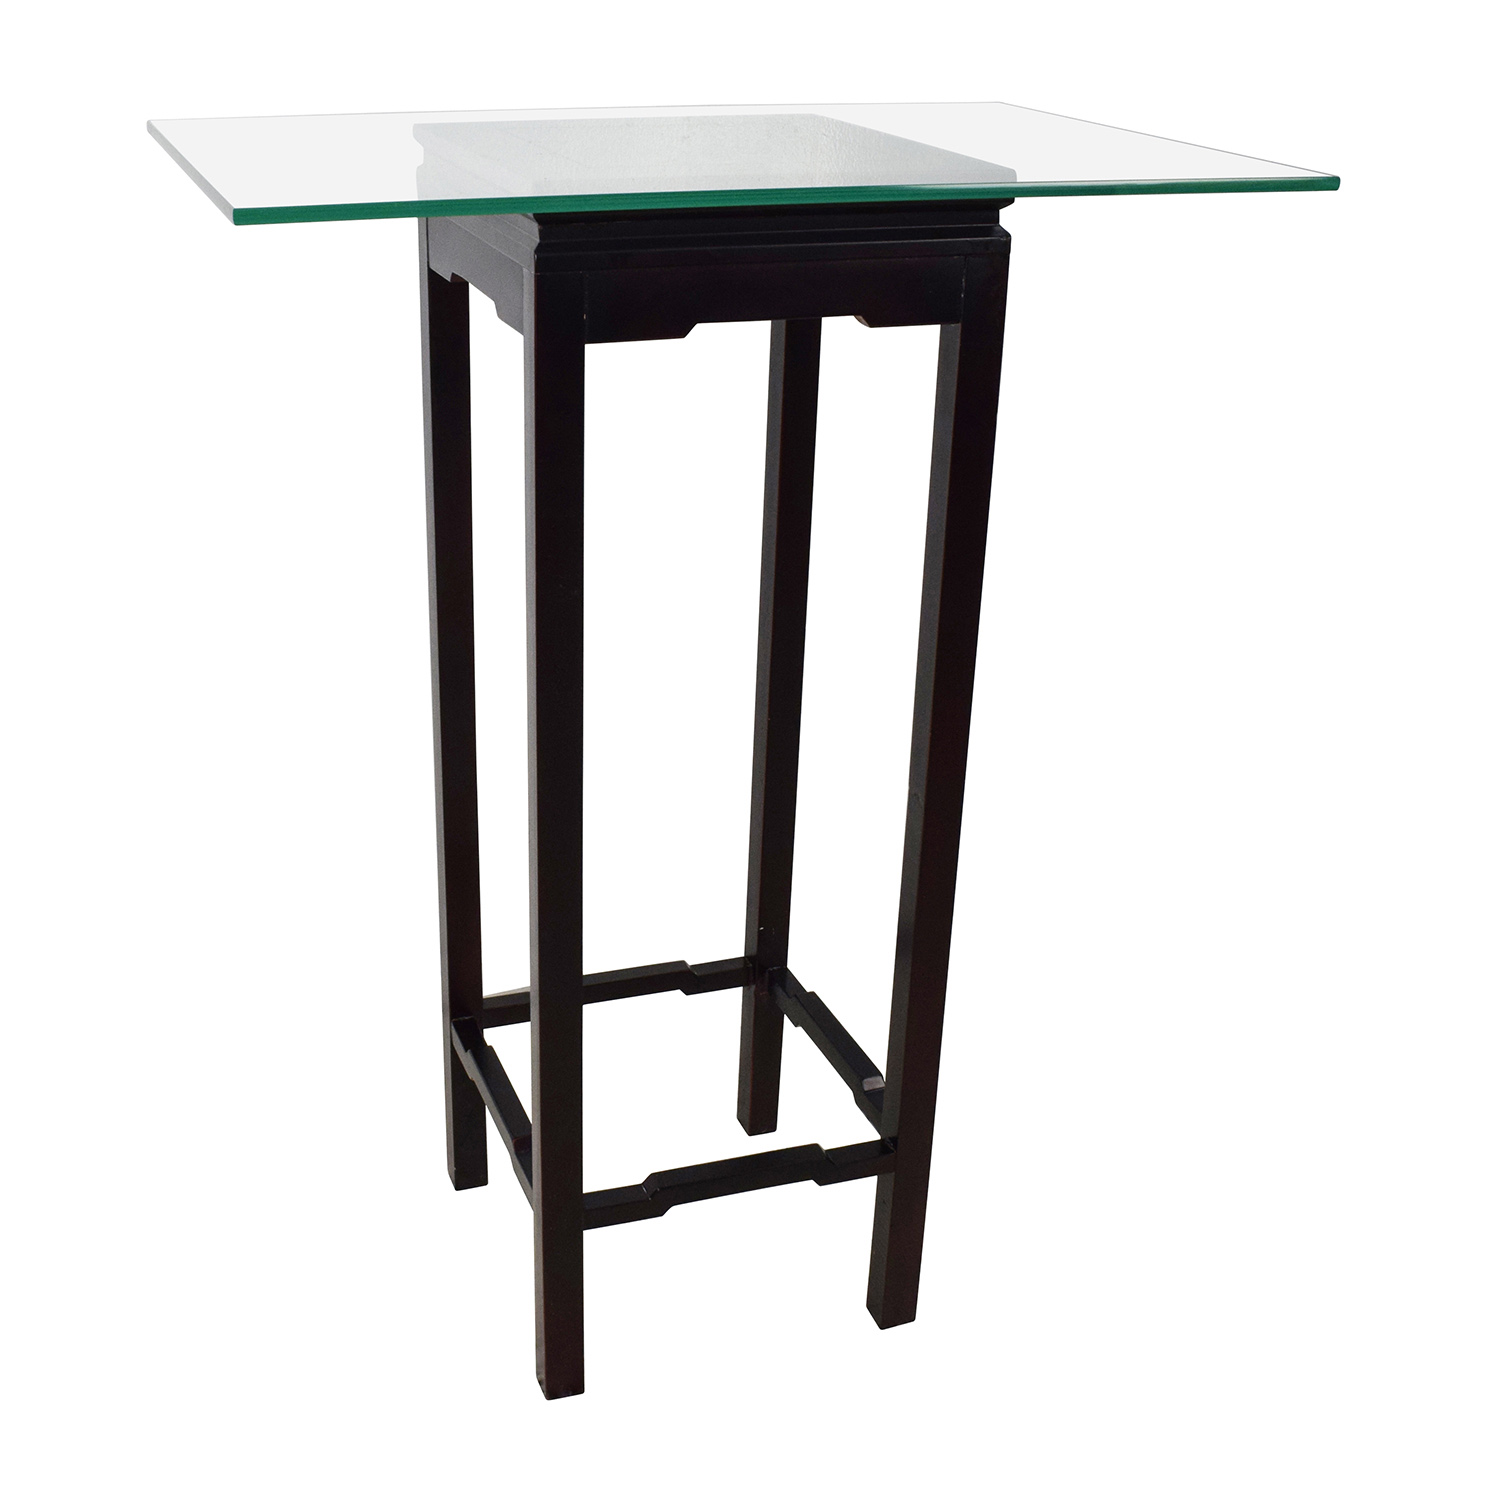 Crate & Barrel Crate & Barrel Glass and Black Frame Stand price